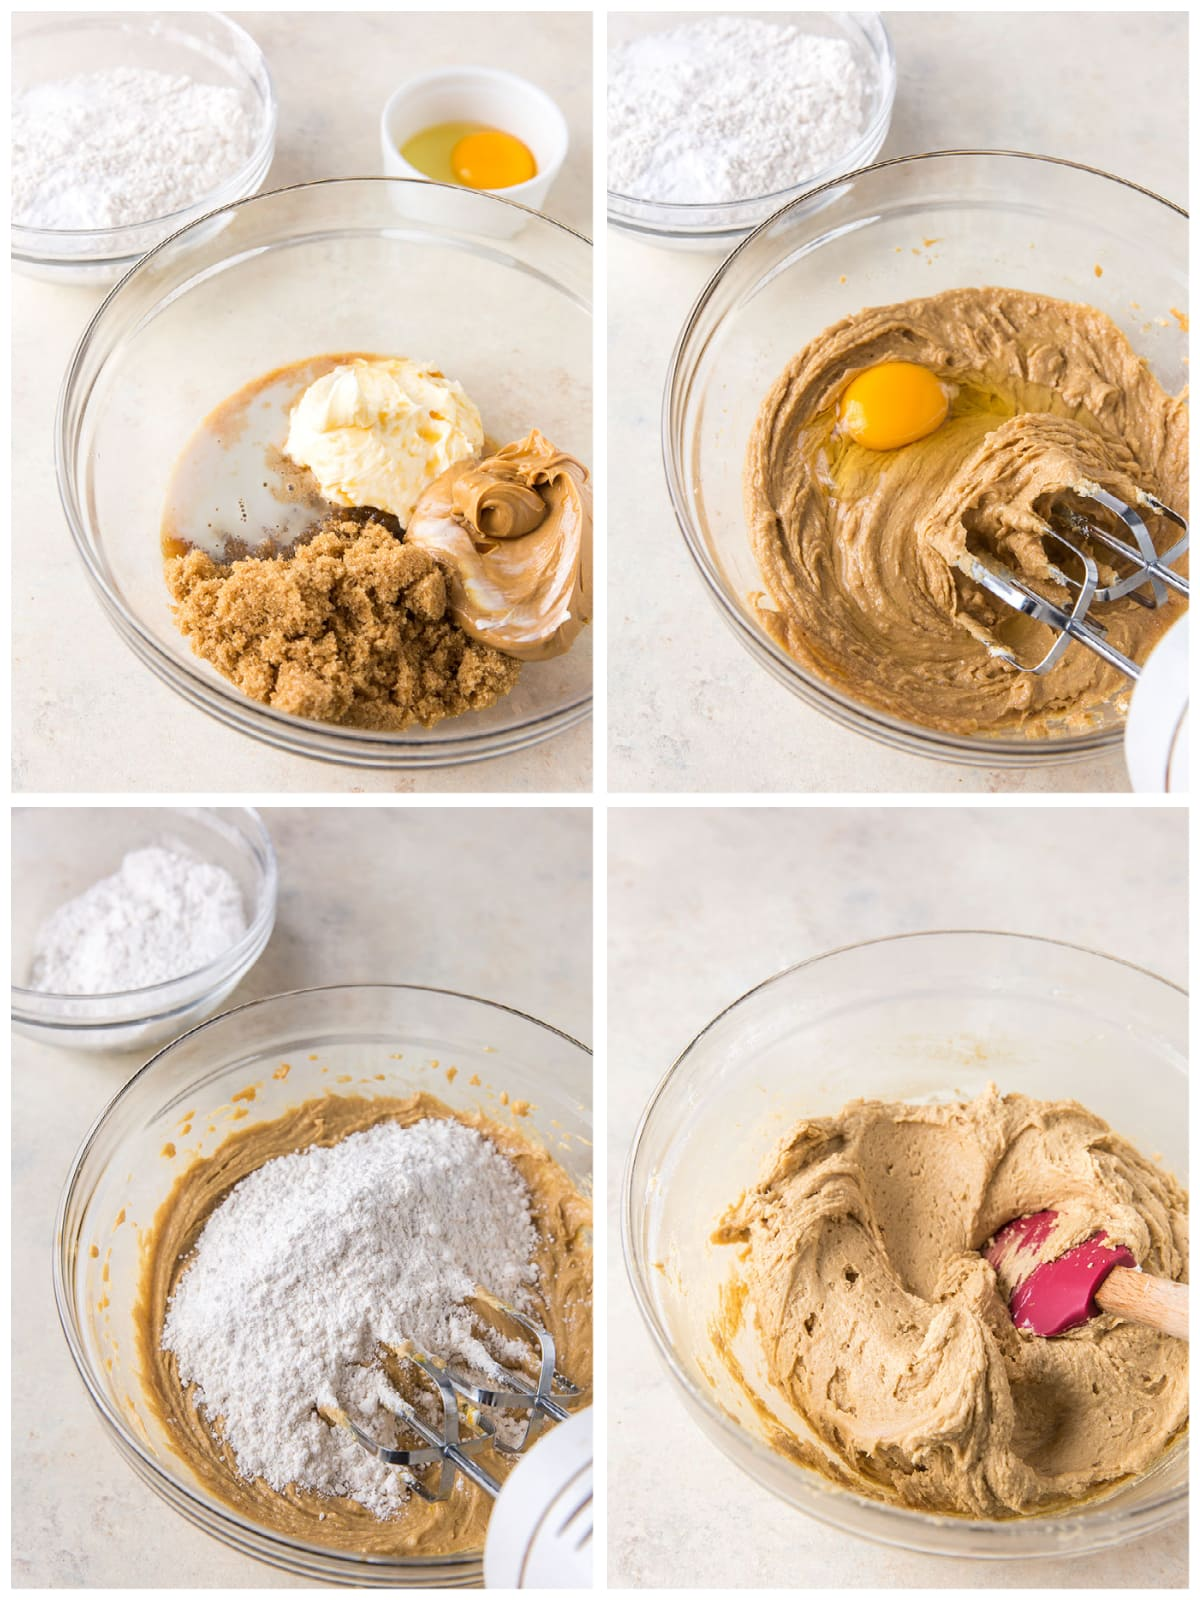 photo collage demonstrating how to make peanut butter reindeer cookie dough in a mixing bowl with a hand mixer